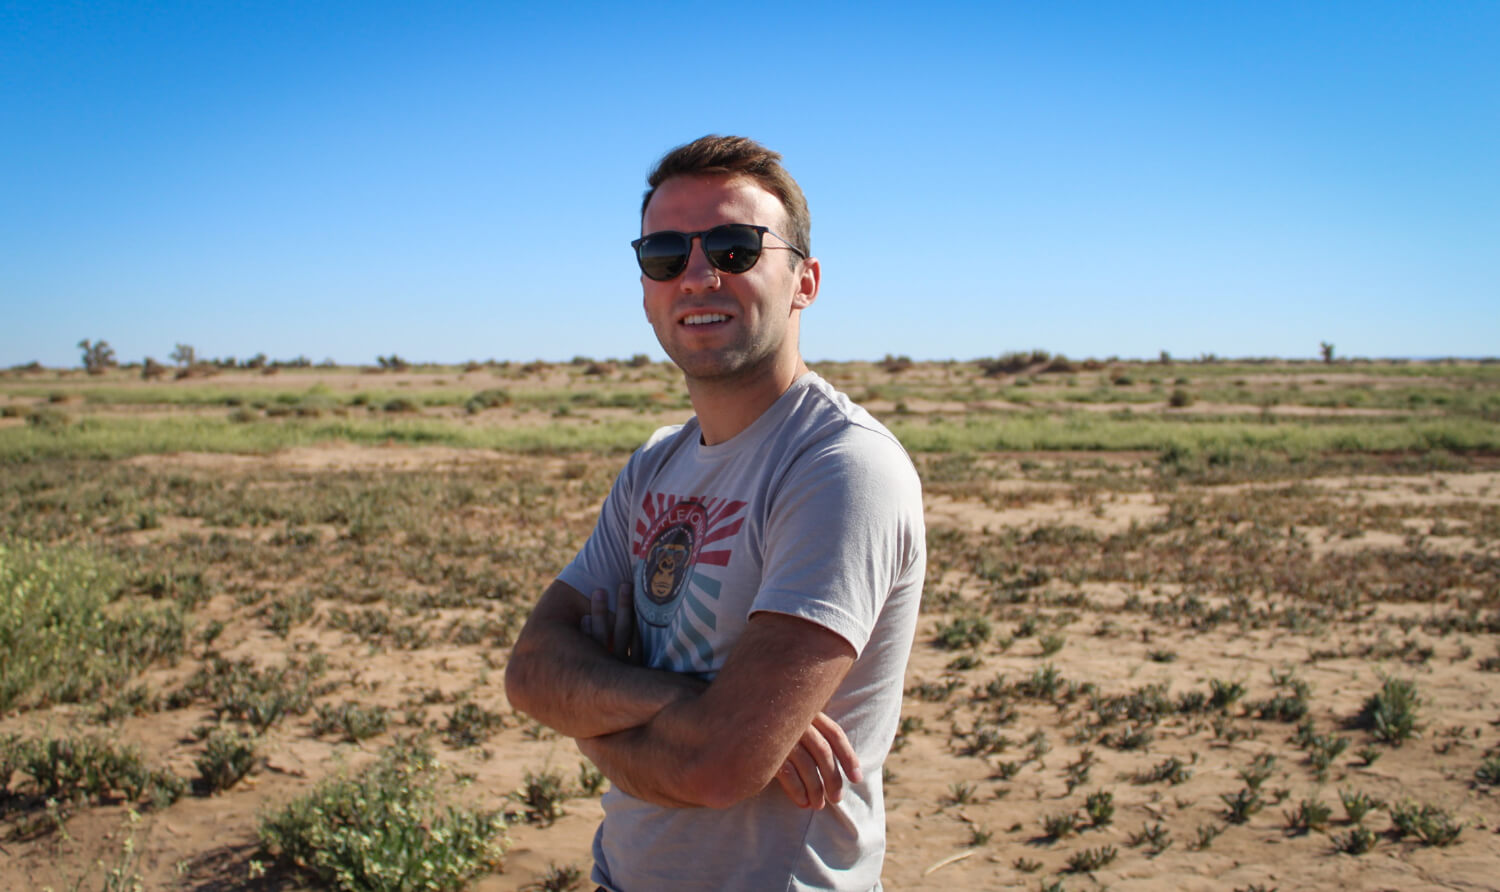 A person standing in a dry desert landscape with their arms crossed.